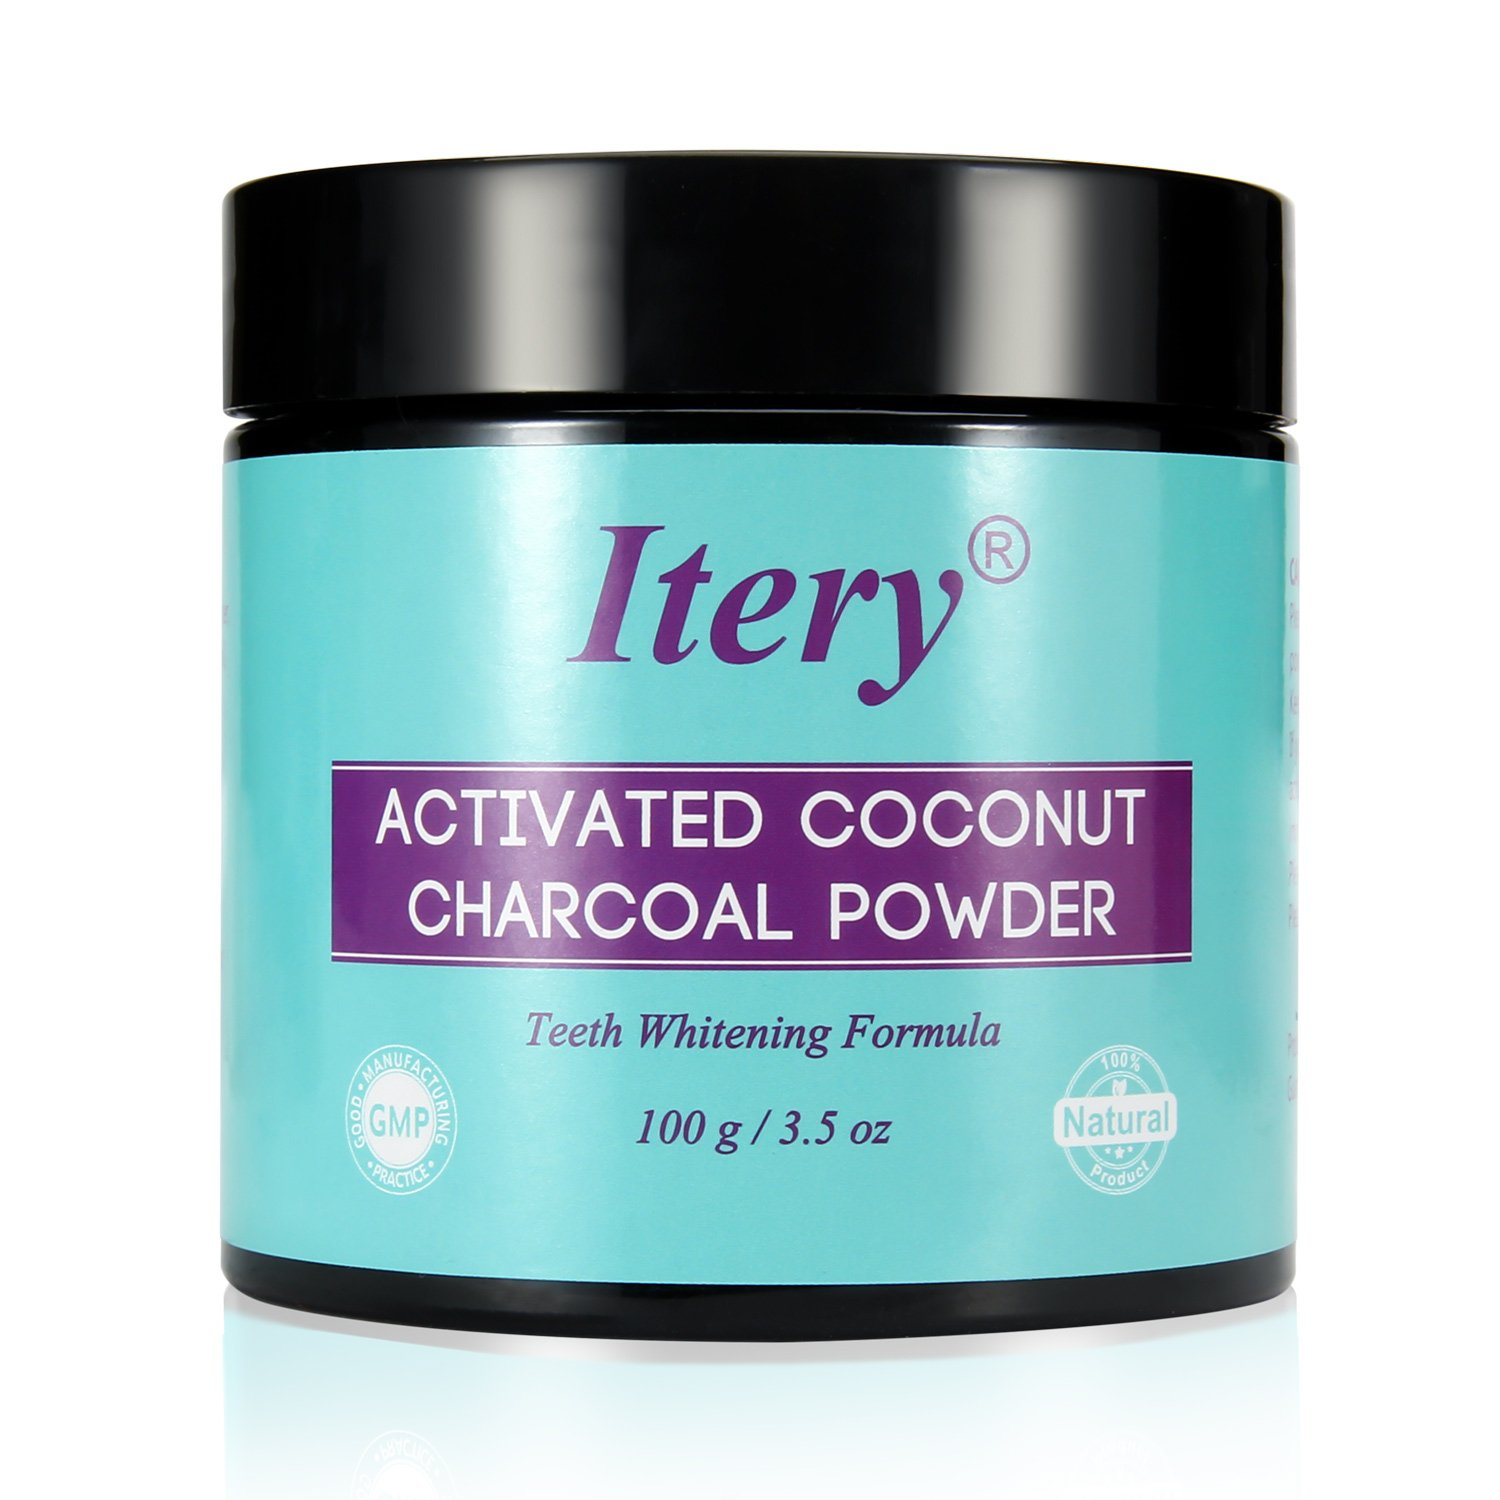 Teeth Whitening Activated Charcoal Powder ITERY Natural Activated Coconut Charcoal Teeth Whitening for Denture Bright Teeth Whitening Dental Care Professional Smile Teeth Whitener 100g/3.5oz